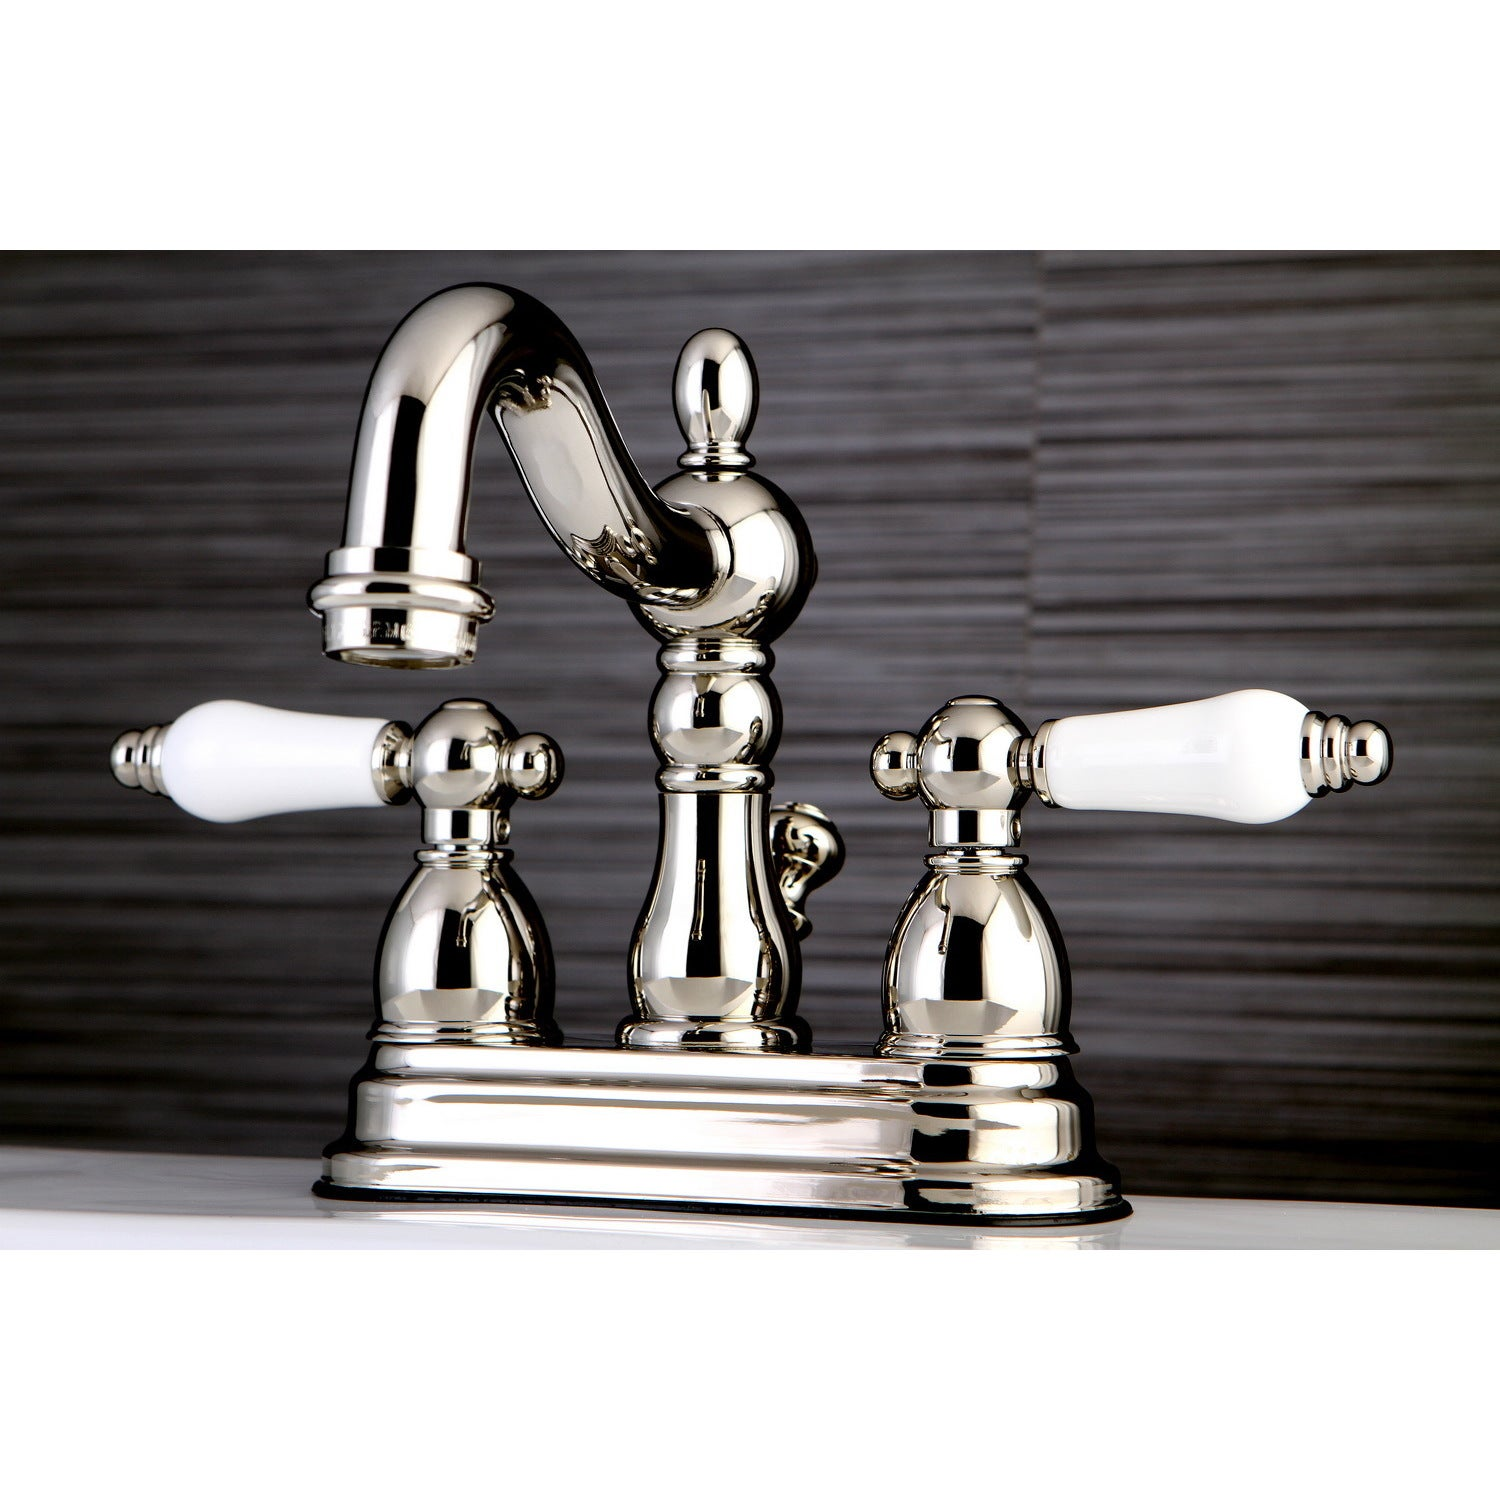 Shop Heritage Porcelain-Handles Polished Nickel Bathroom Faucet ...